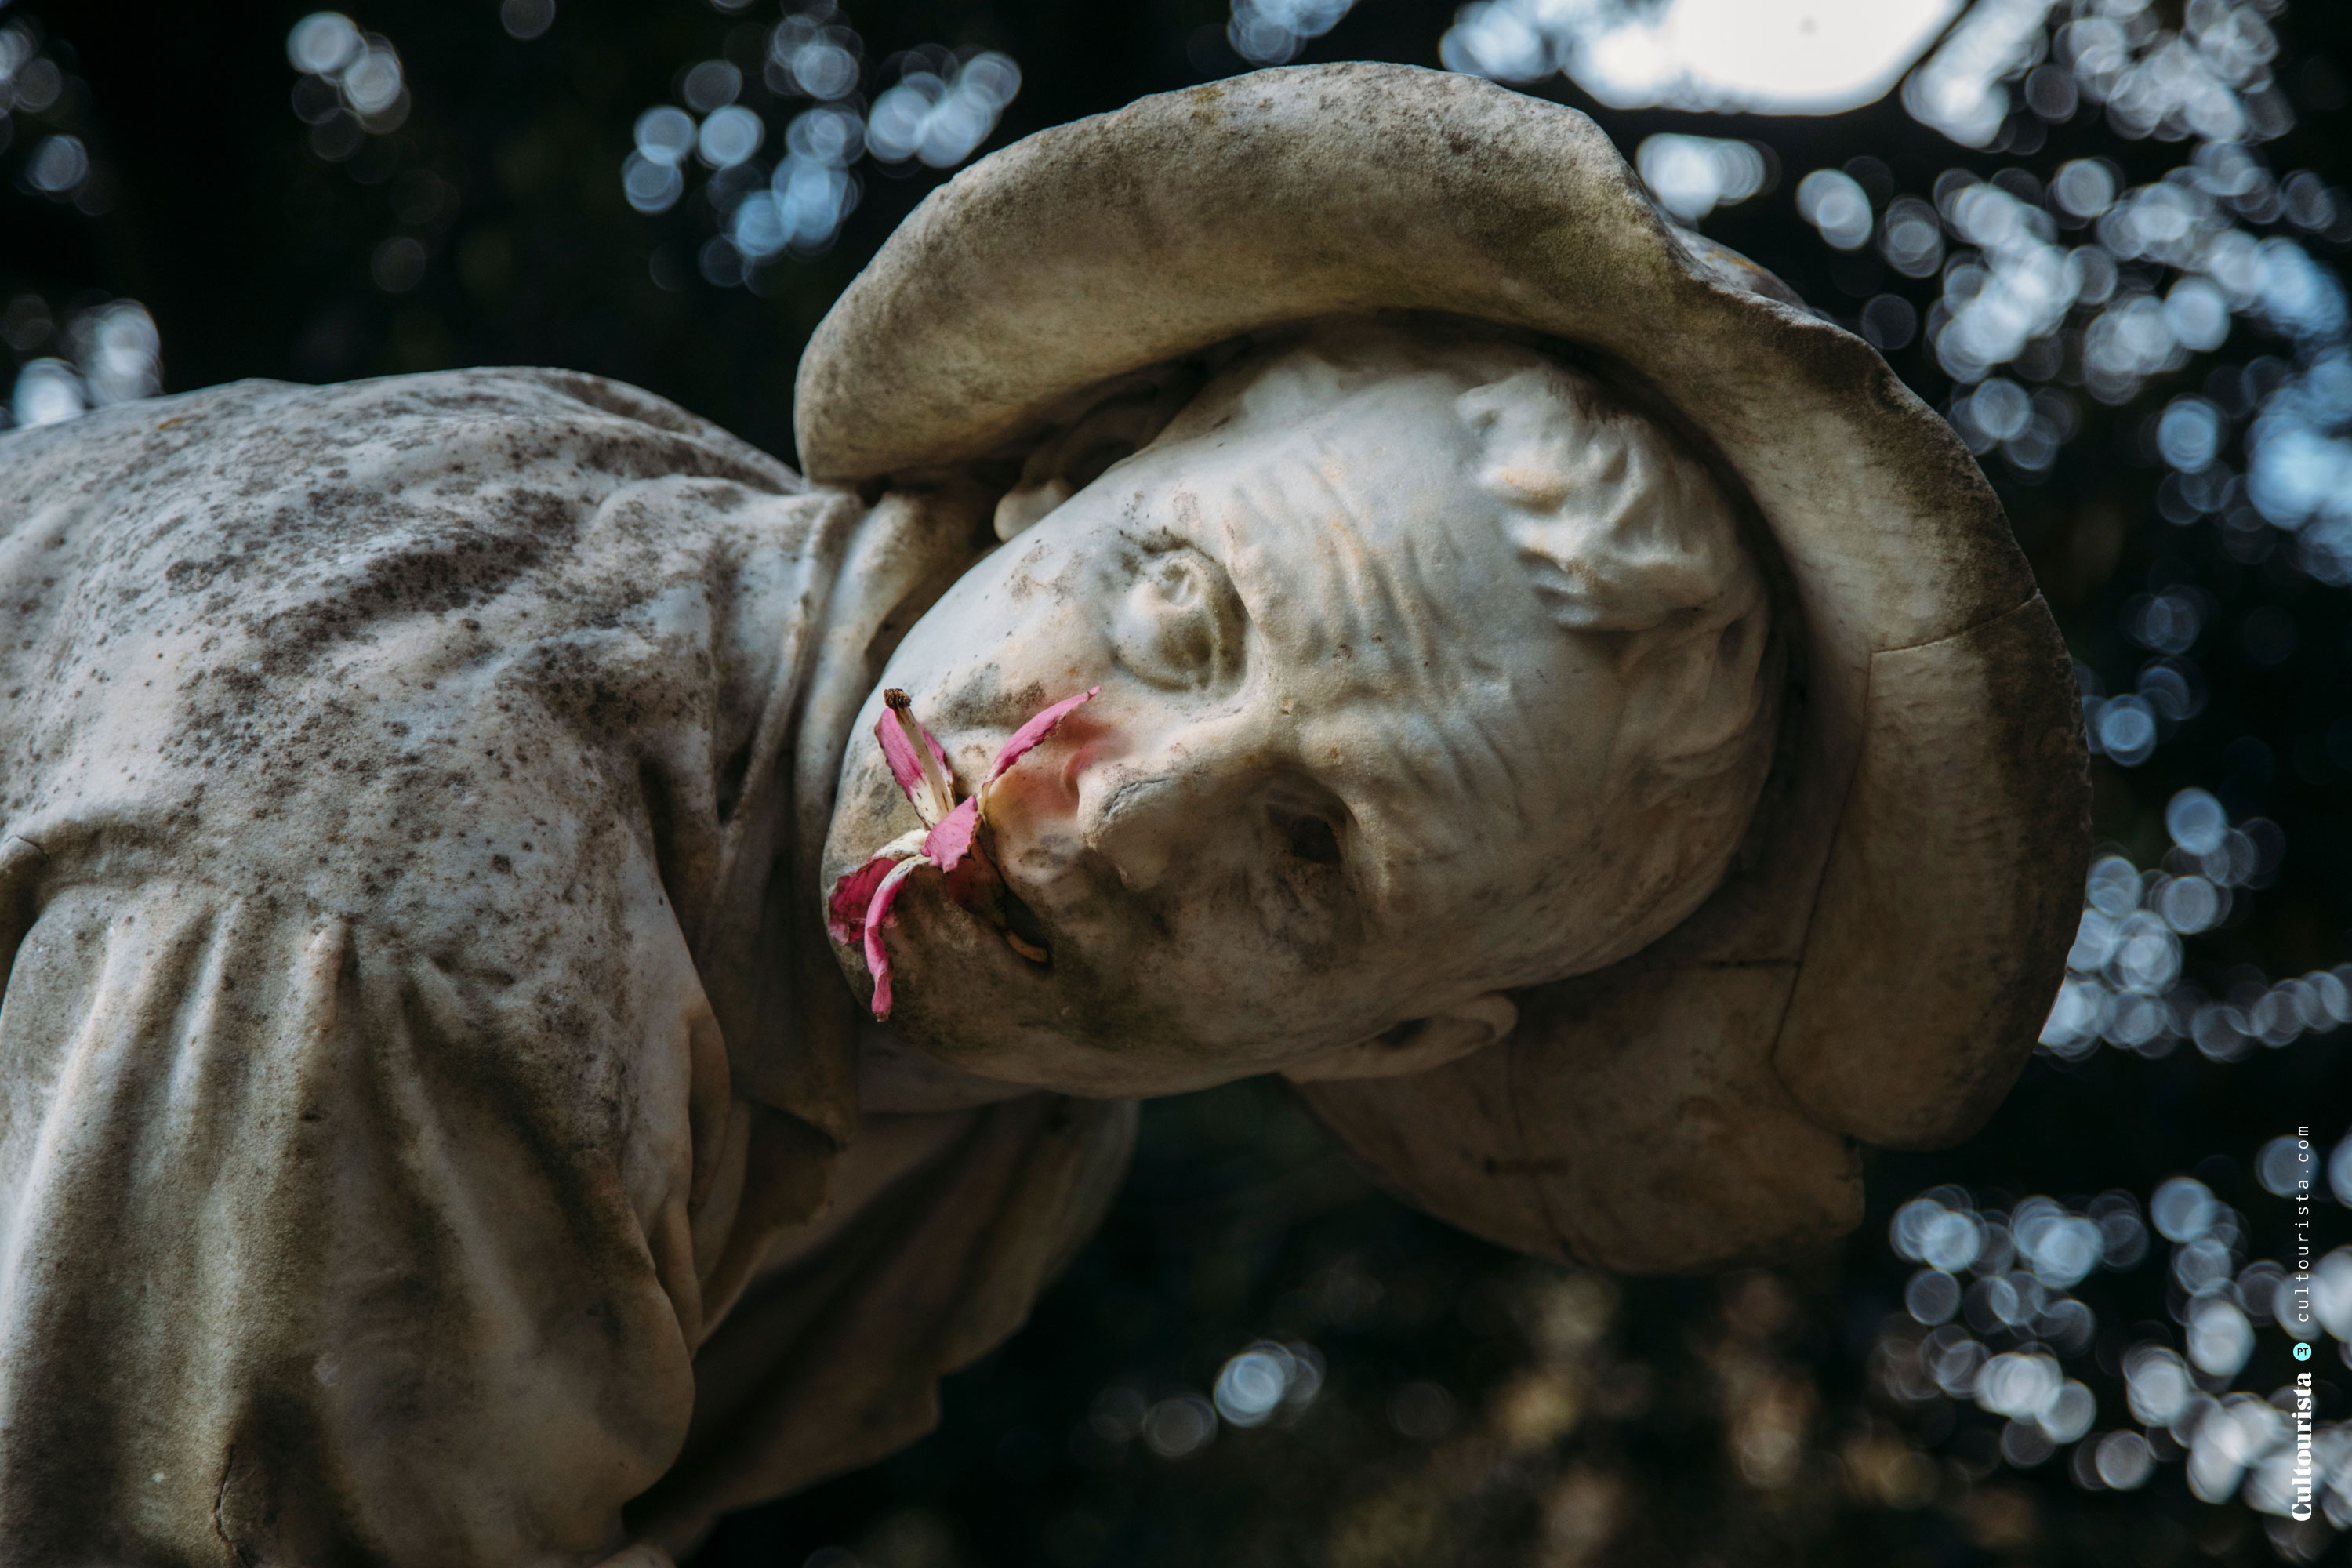 Sculpture with a flower in the mouth at the Jardim da Estrela park in Lisbon Portugal